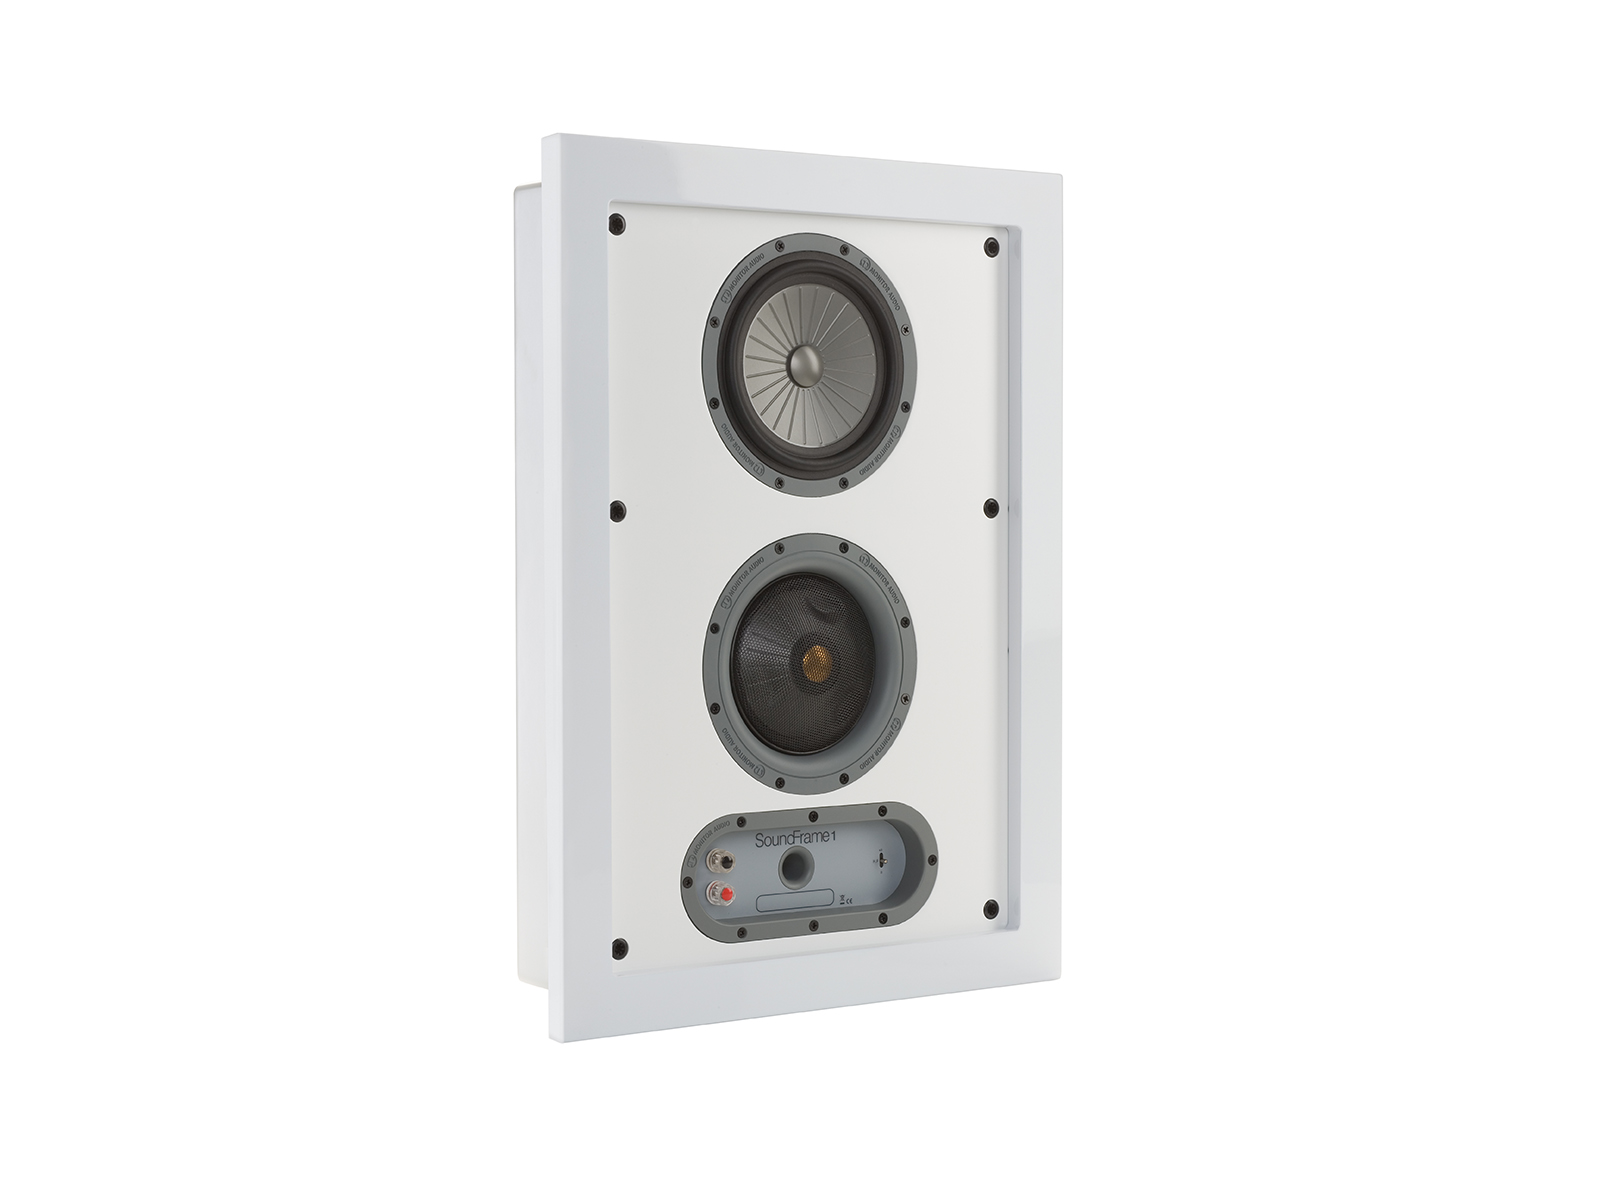 SoundFrame SF1, in-wall speakers, grille-less, with a high gloss white lacquer finish.